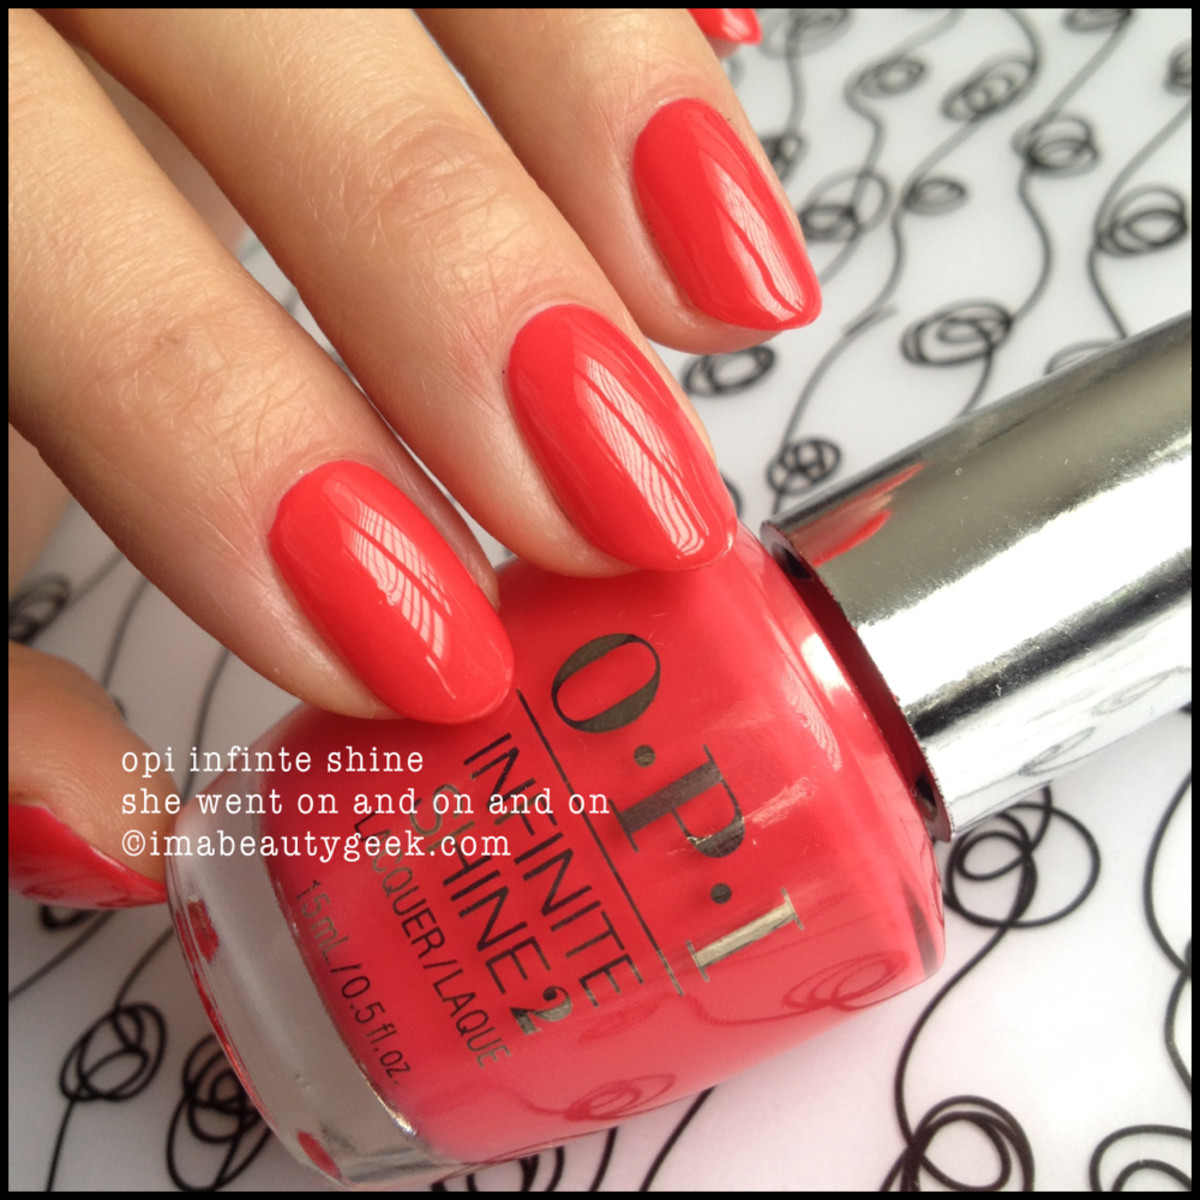 OPI Infinte Shine She Went On and On and On